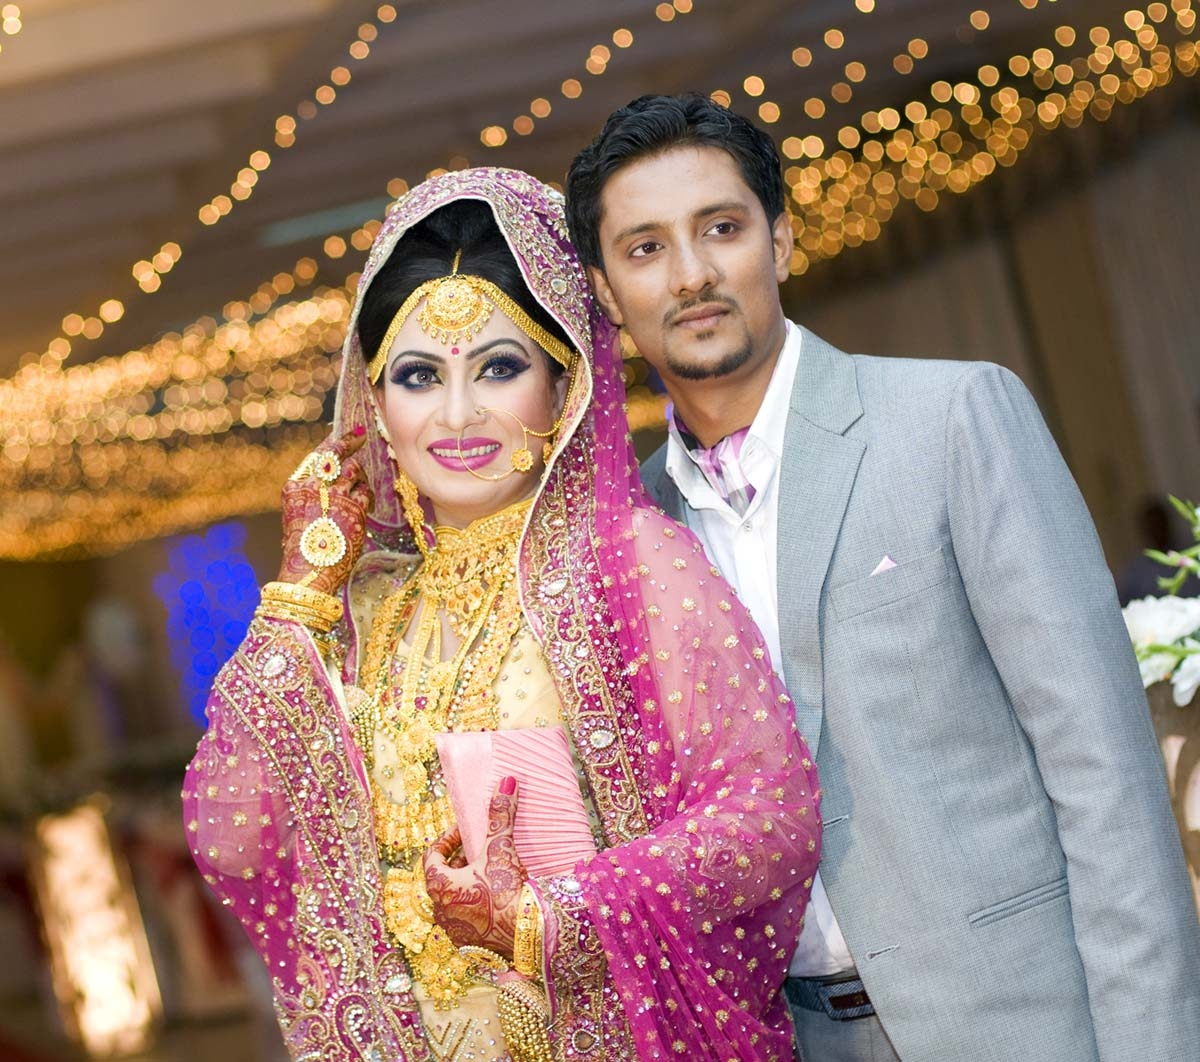 Farzana Chhoby's post-wedding reception